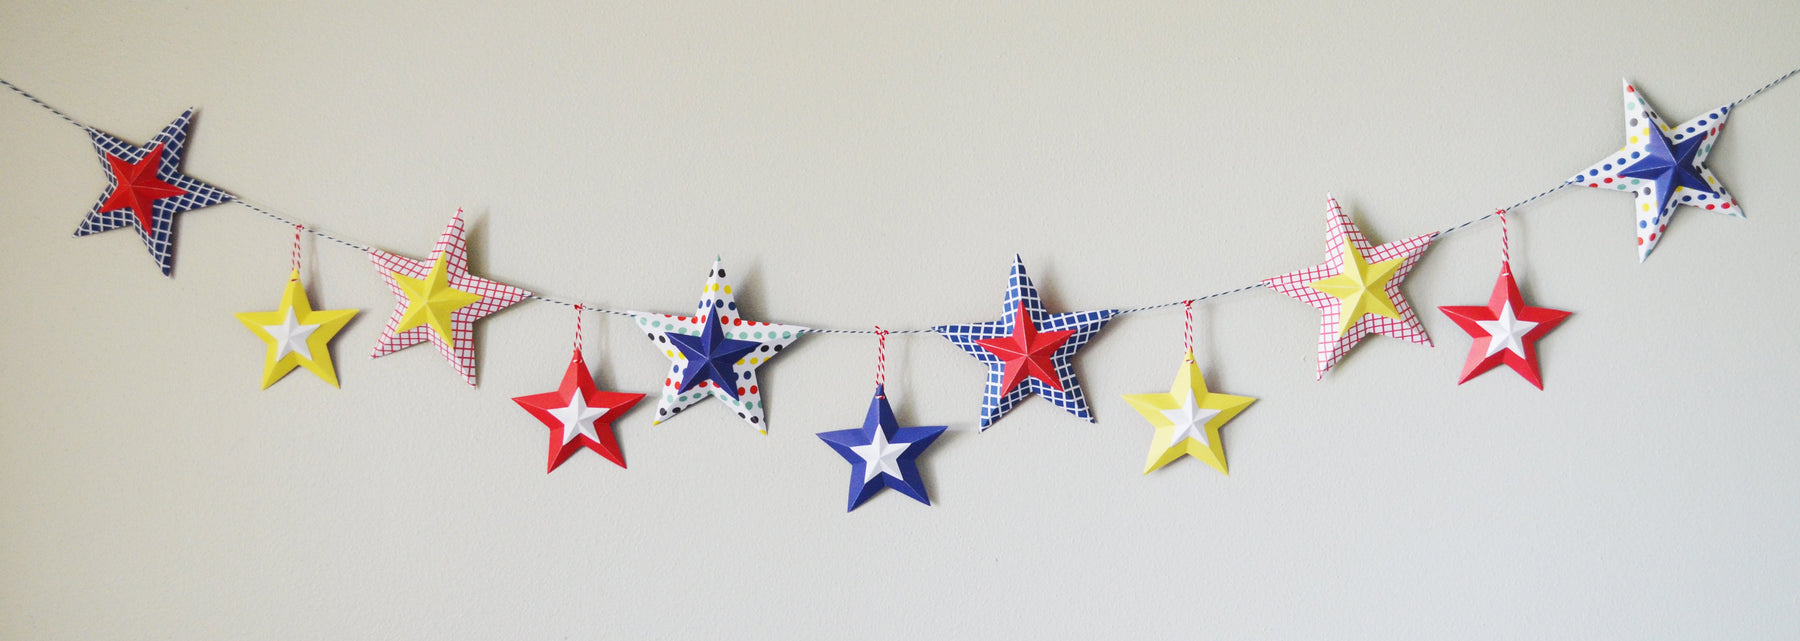 4th of July Paper Star Banner with Cricut Explore Air 2